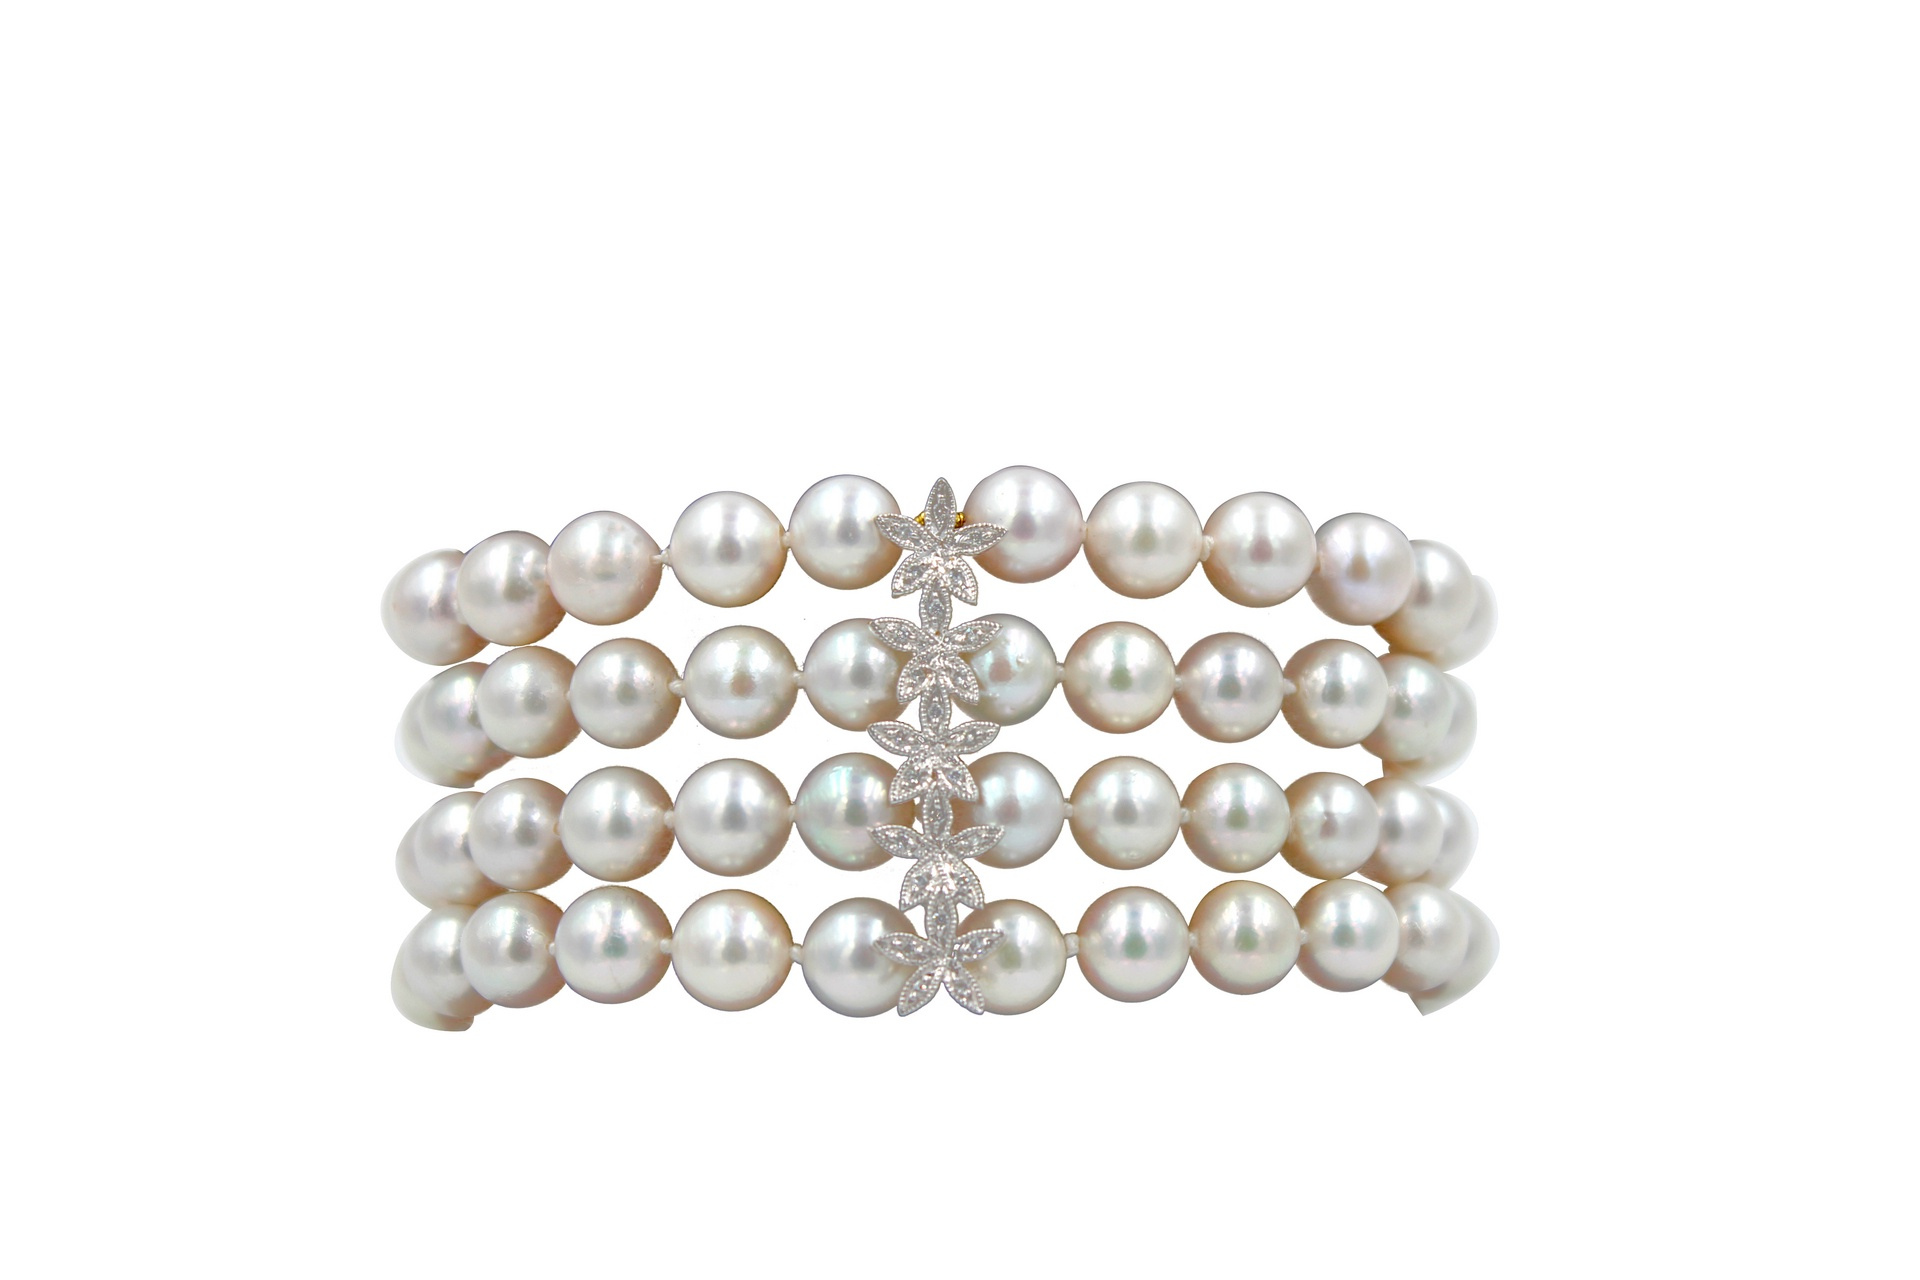 z id bangles bracelet bracelets golden south sea pearl diamond pearls j cuff bangle jewelry at